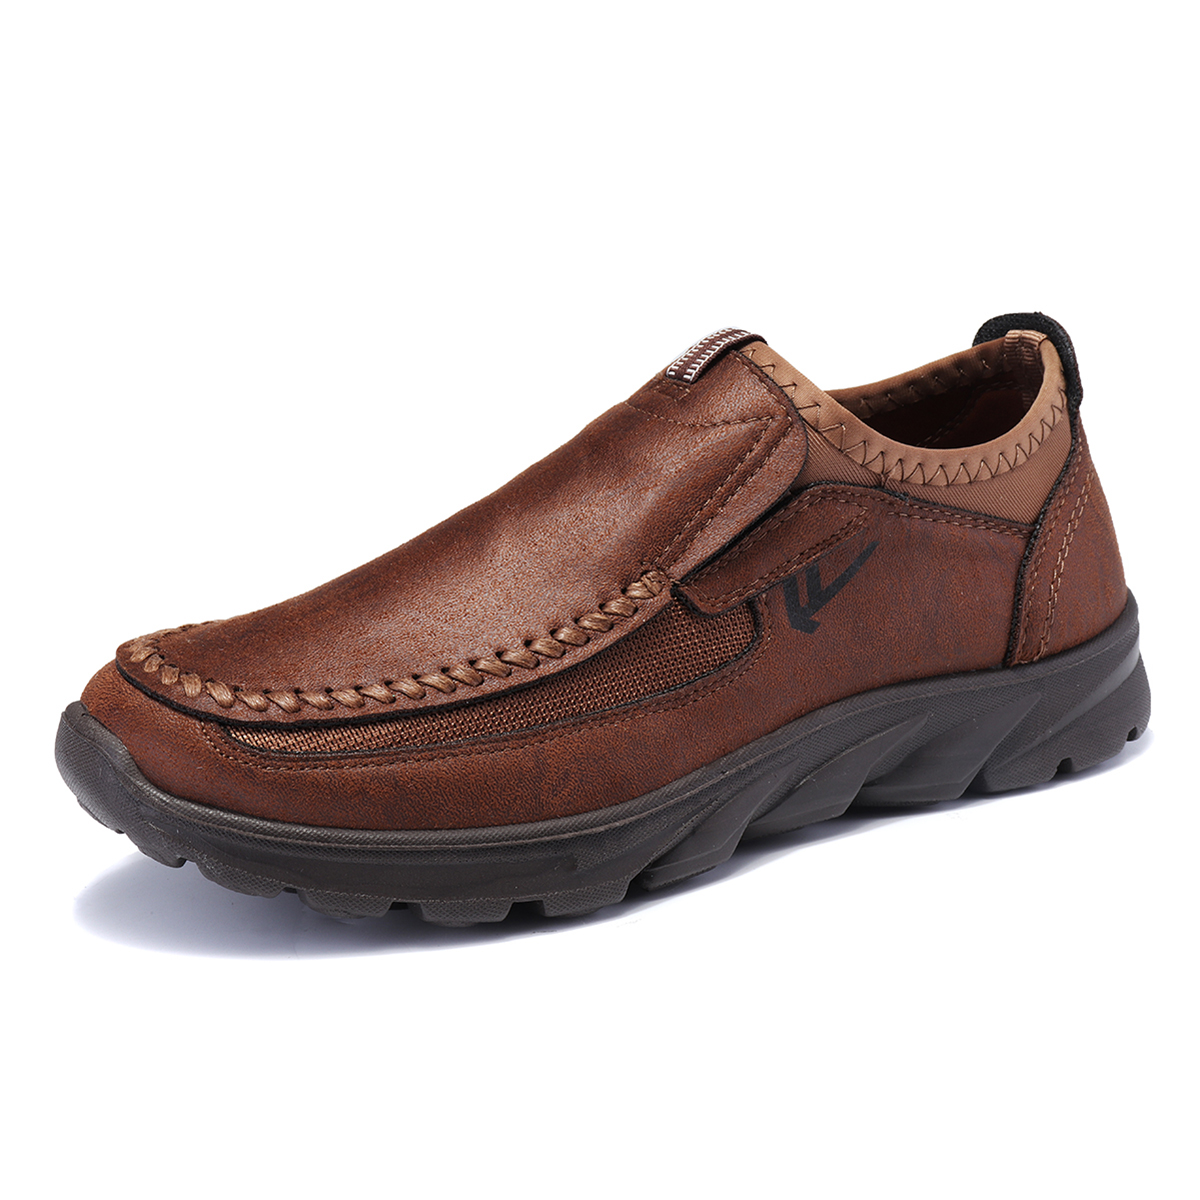 Men-039-s-Casual-Leather-Slip-On-Driving-Loafers-Antiskid-Moccasins-Breathable thumbnail 5